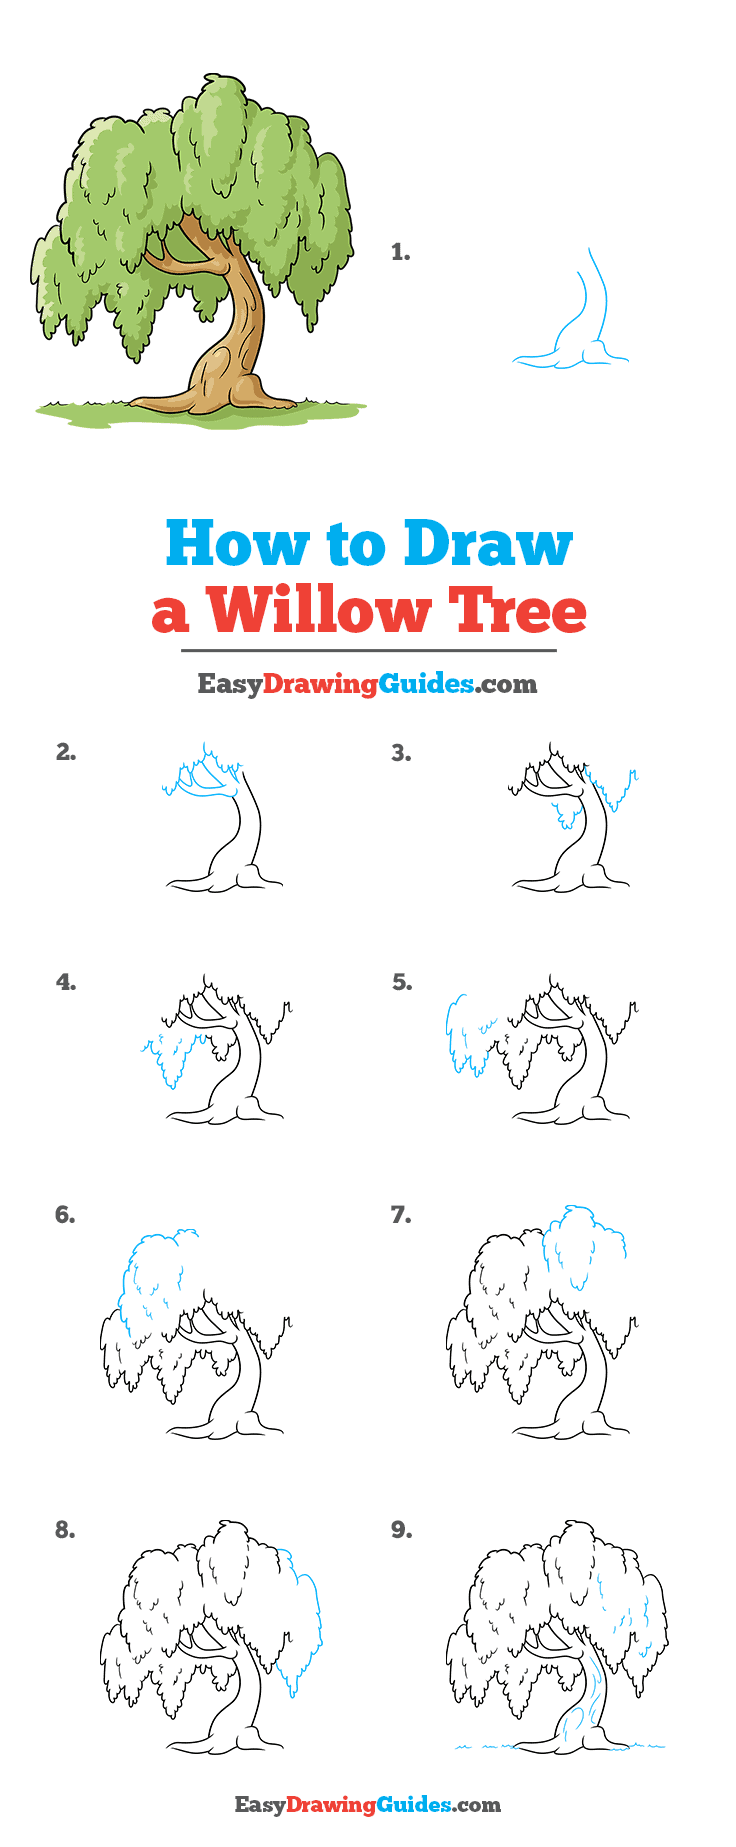 How to Draw a Willow Tree Step by Step Tutorial Image